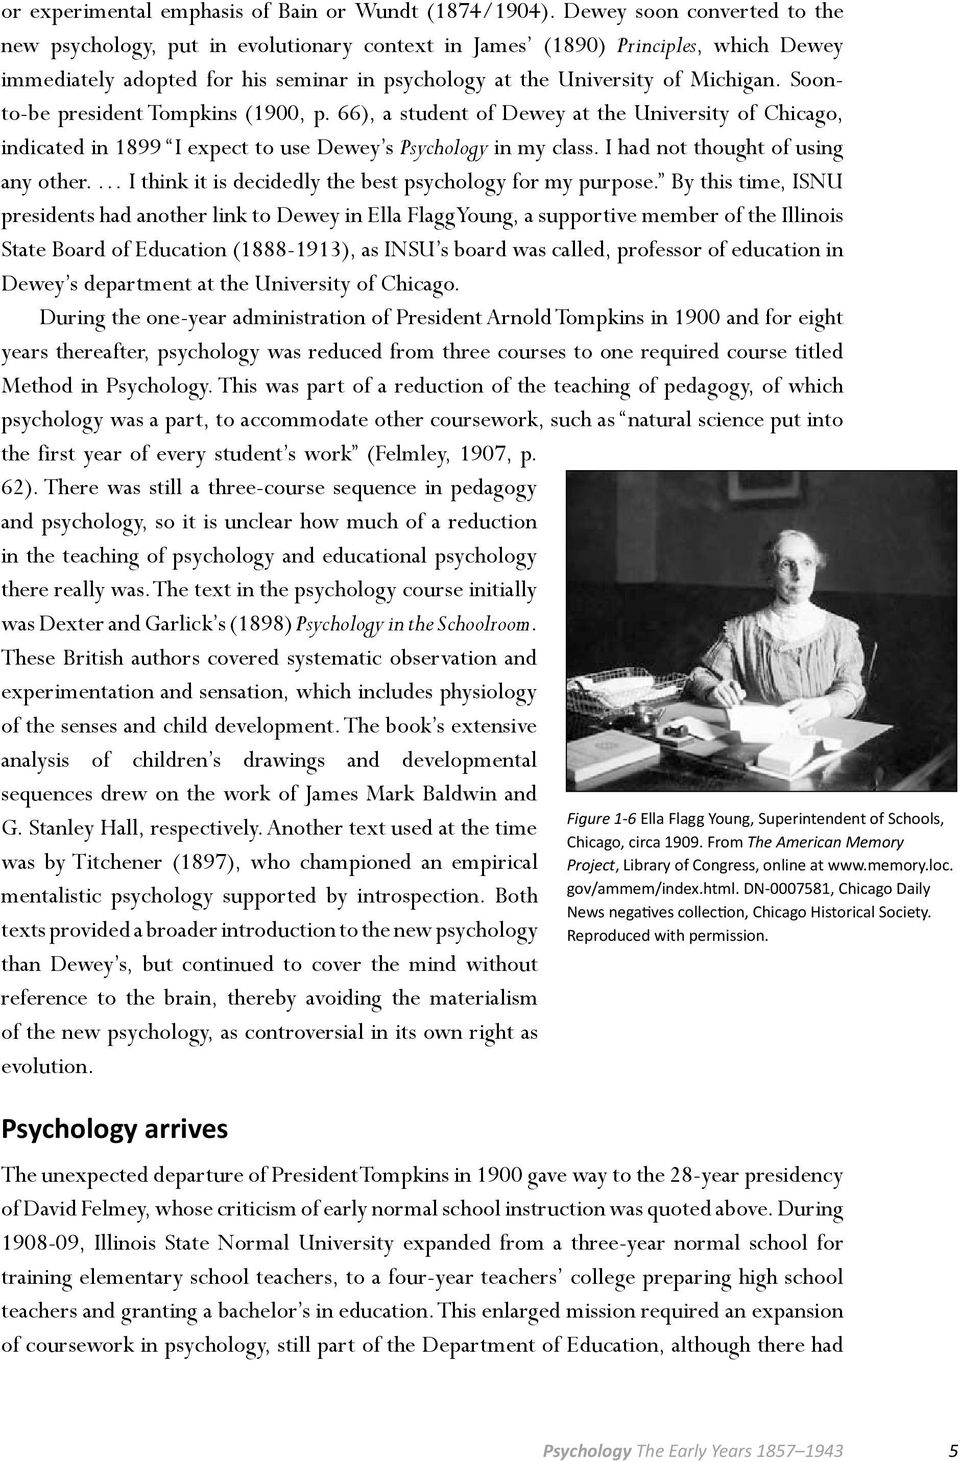 Soonto-be president Tompkins (1900, p. 66), a student of Dewey at the University of Chicago, indicated in 1899 I expect to use Dewey s Psychology in my class. I had not thought of using any other.